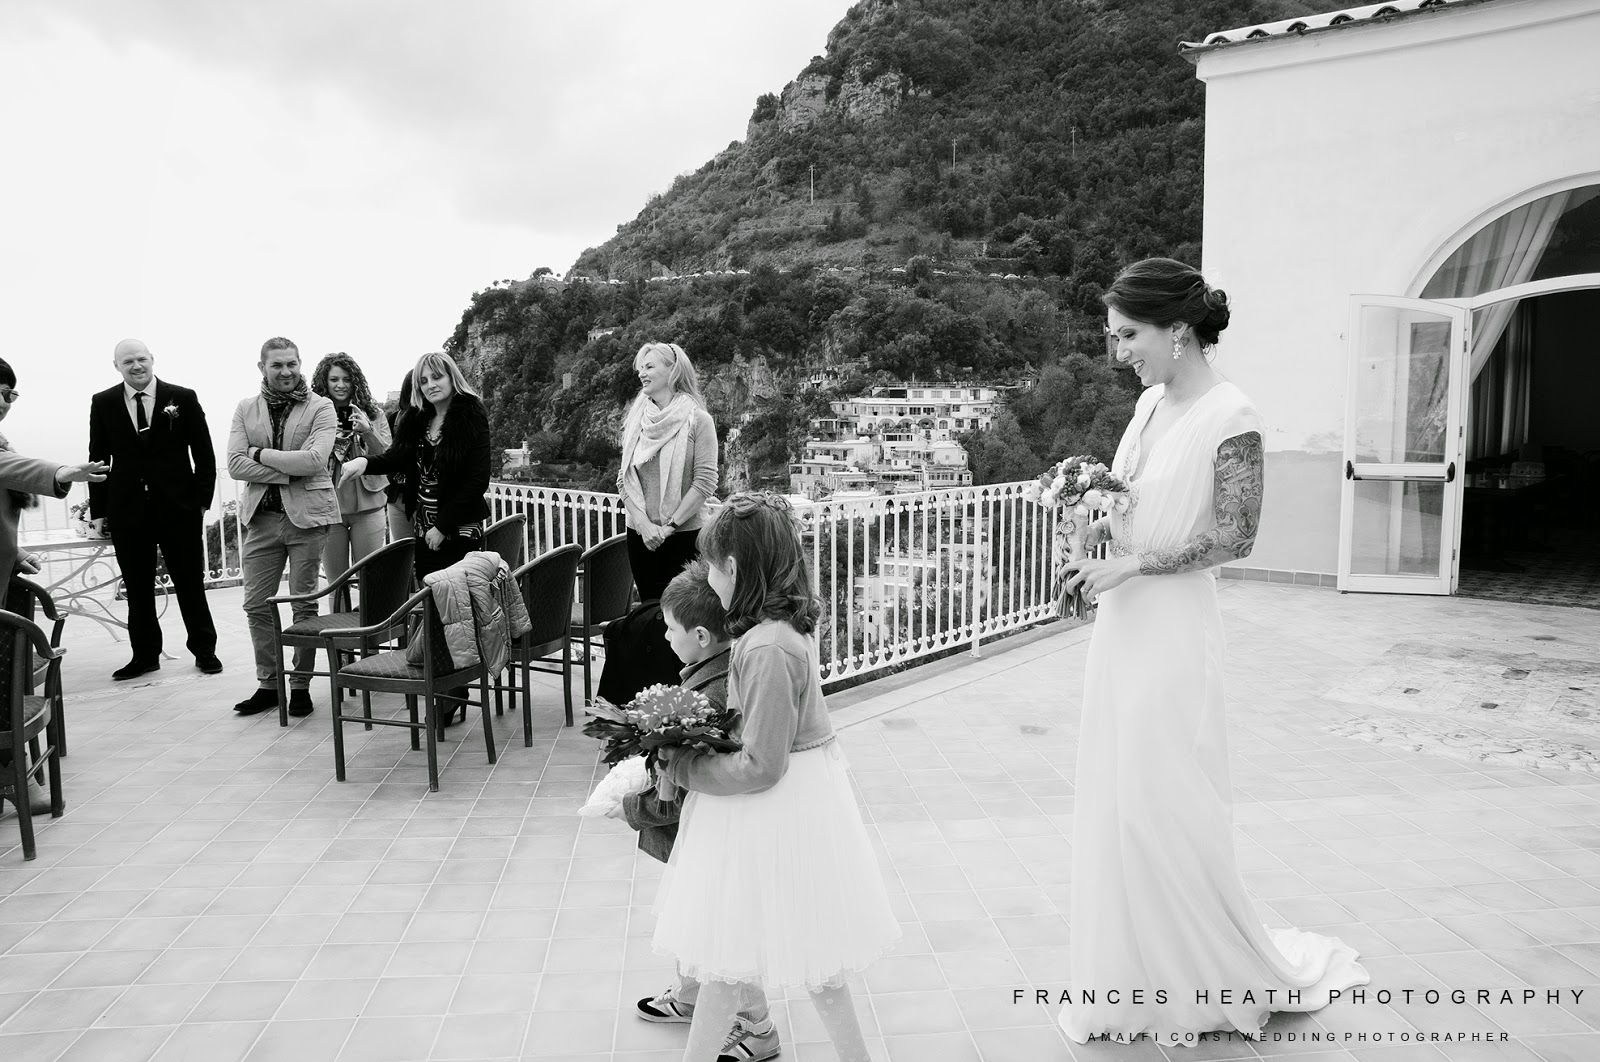 Wedding ceremony at Positano town hall